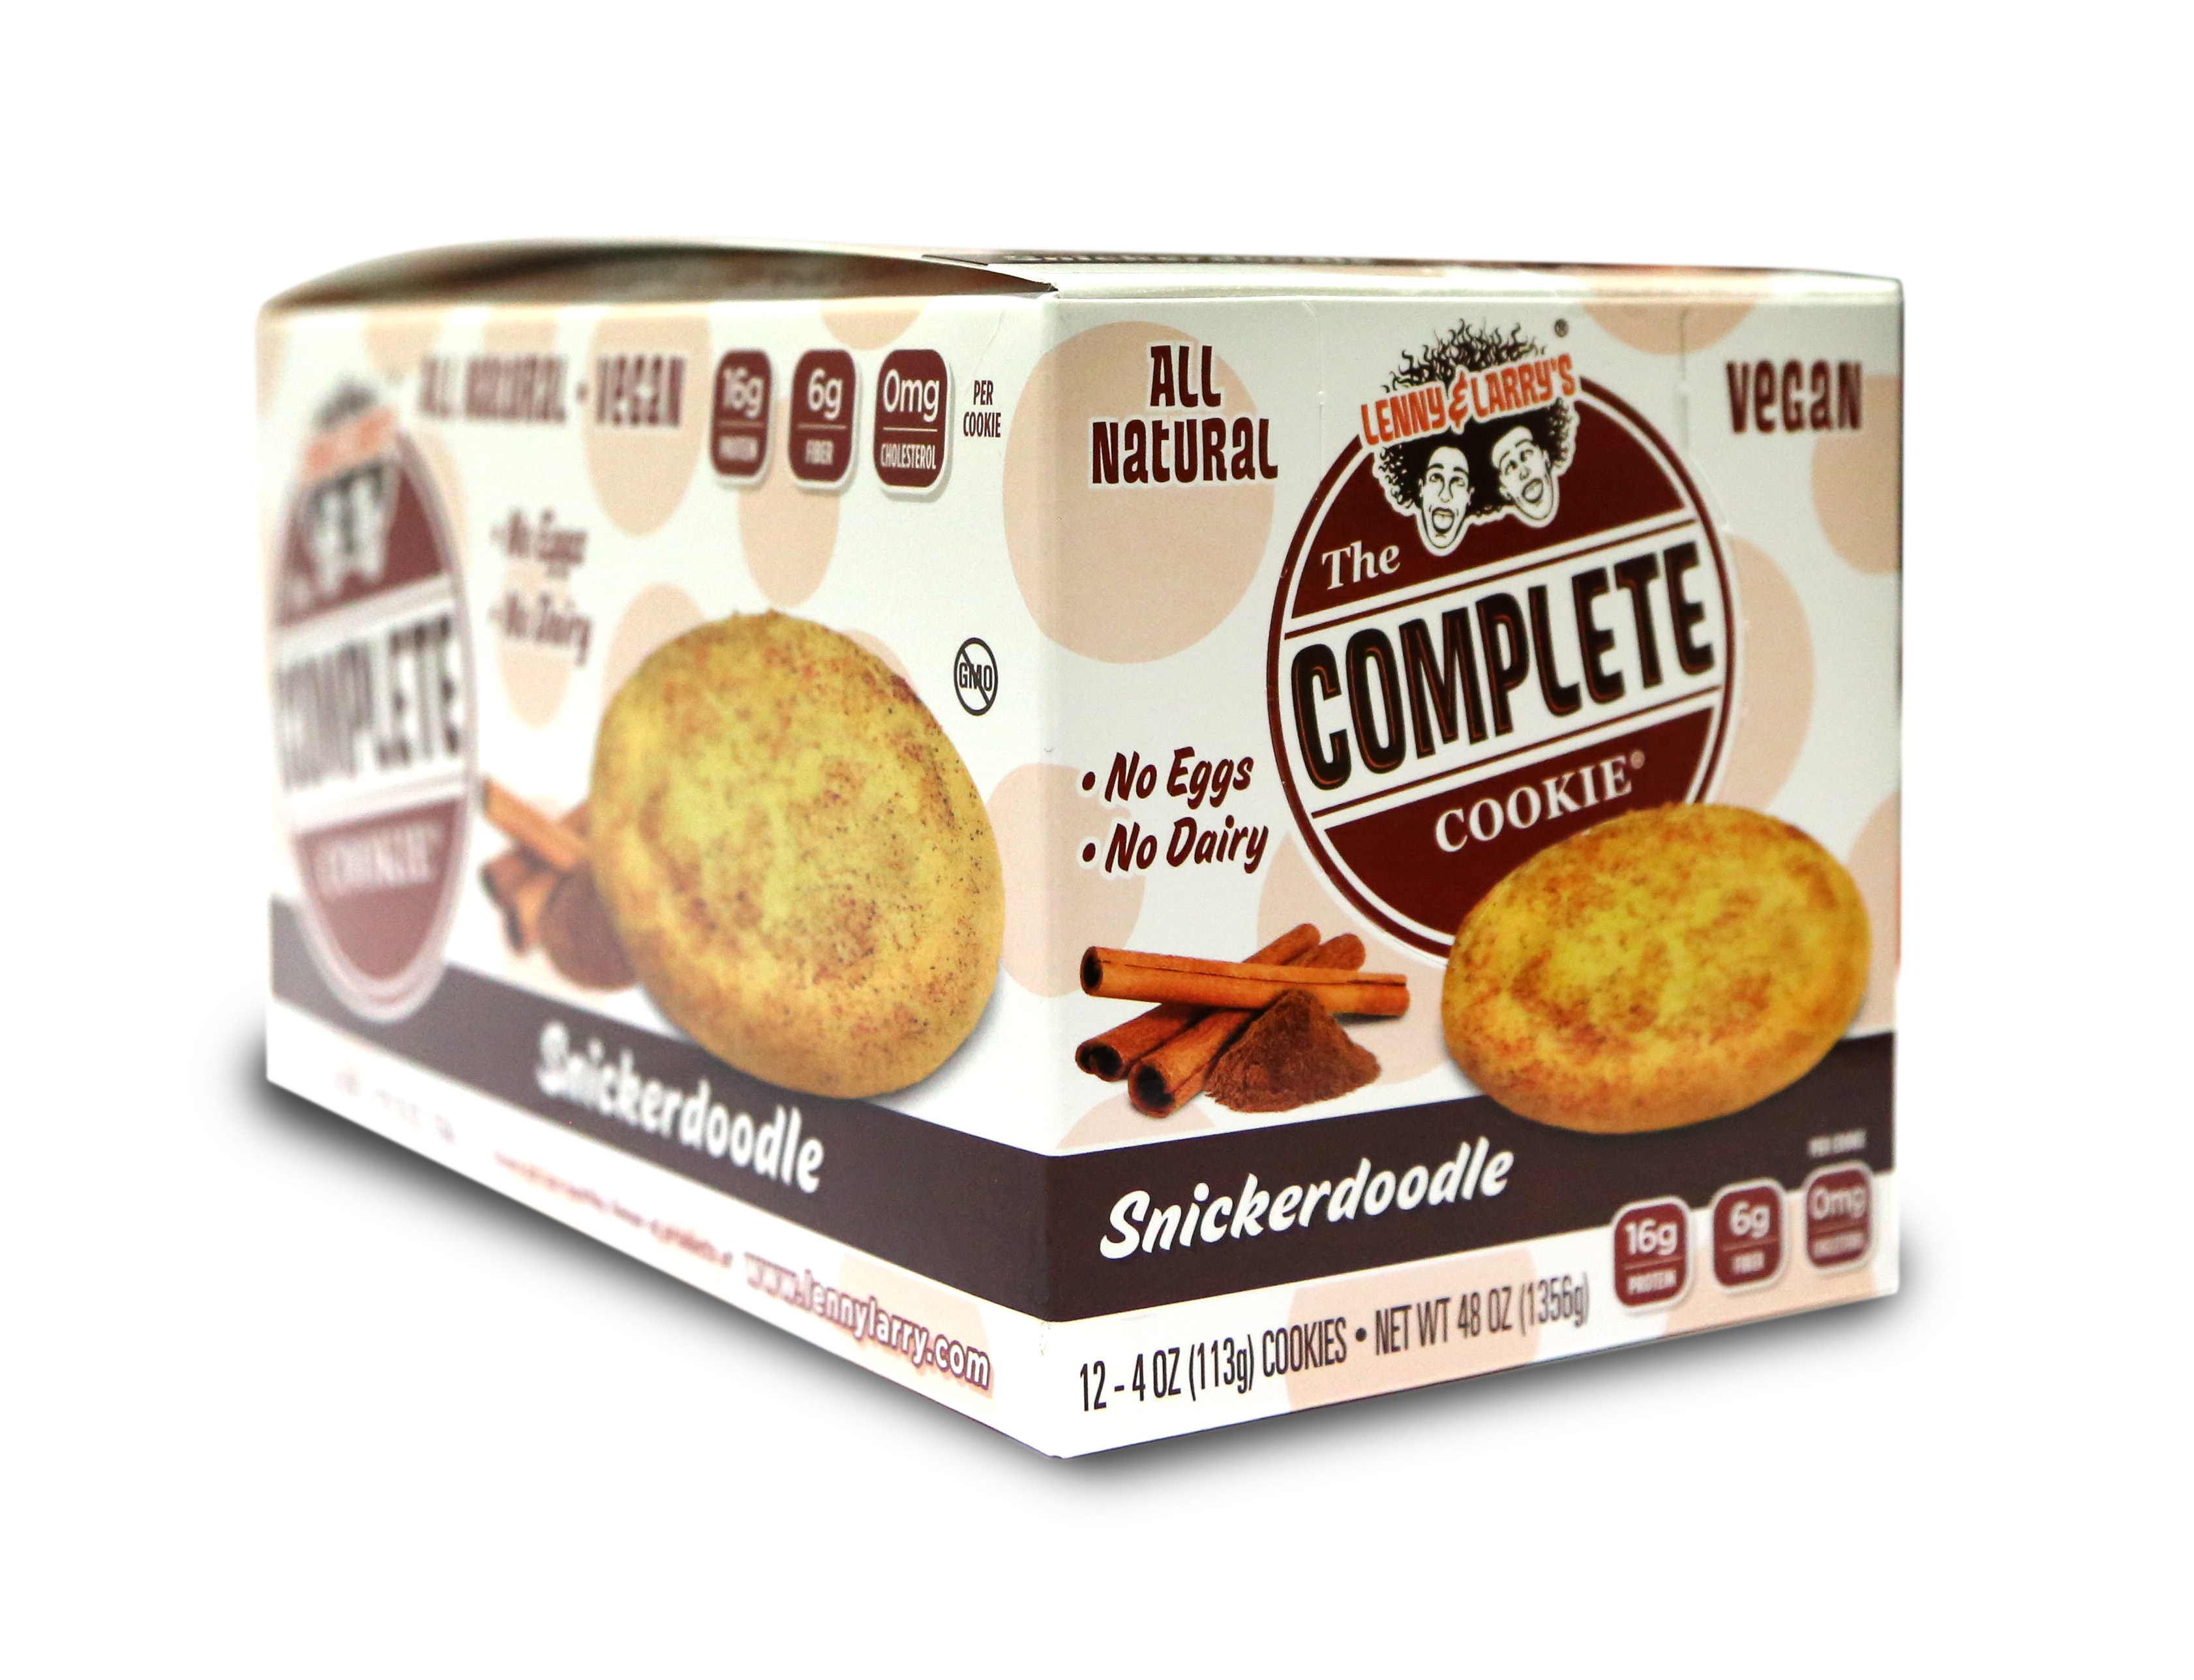 snickerdoodle-box.jpg